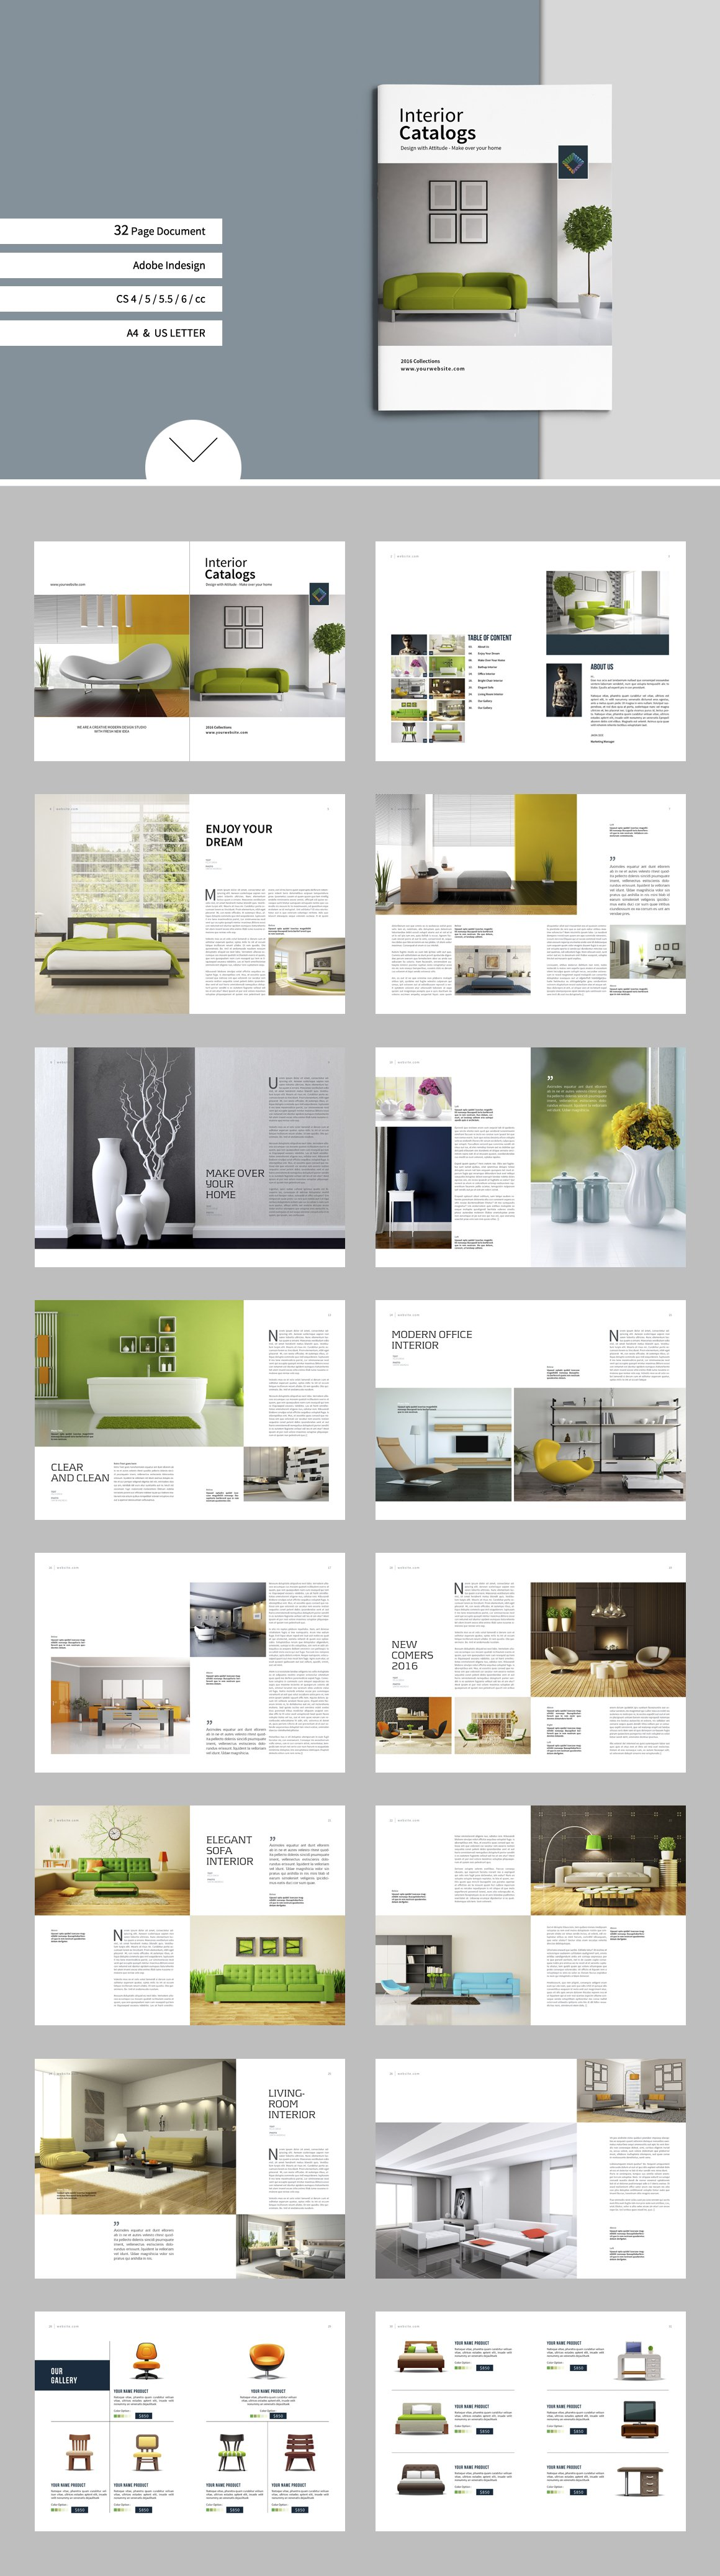 Catalogs brochure interior vol 8 brochure templates for Indesign interior